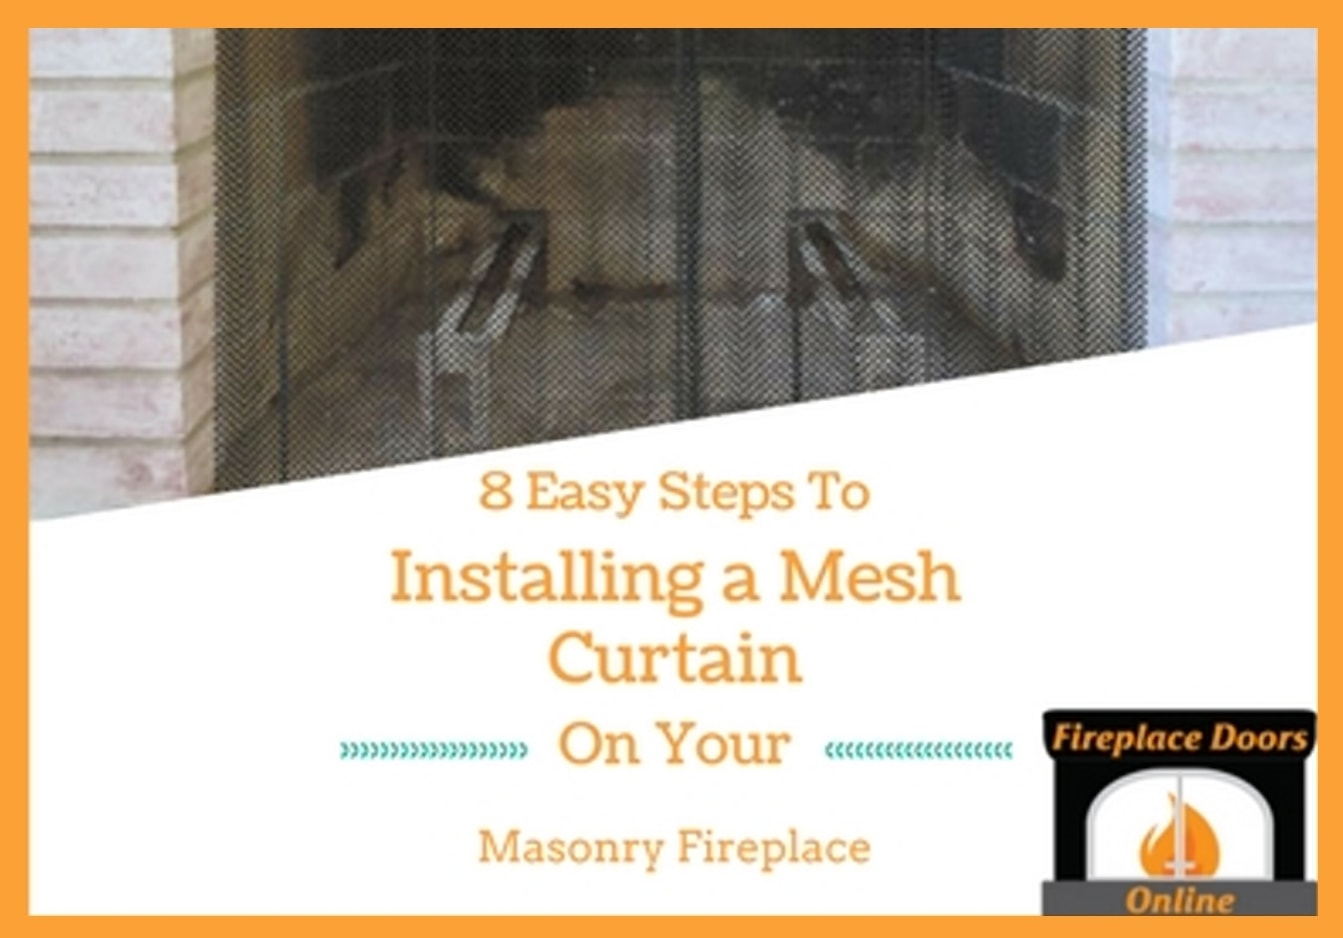 8 Easy Steps to Instlling a Fireplace Mesh Curtain